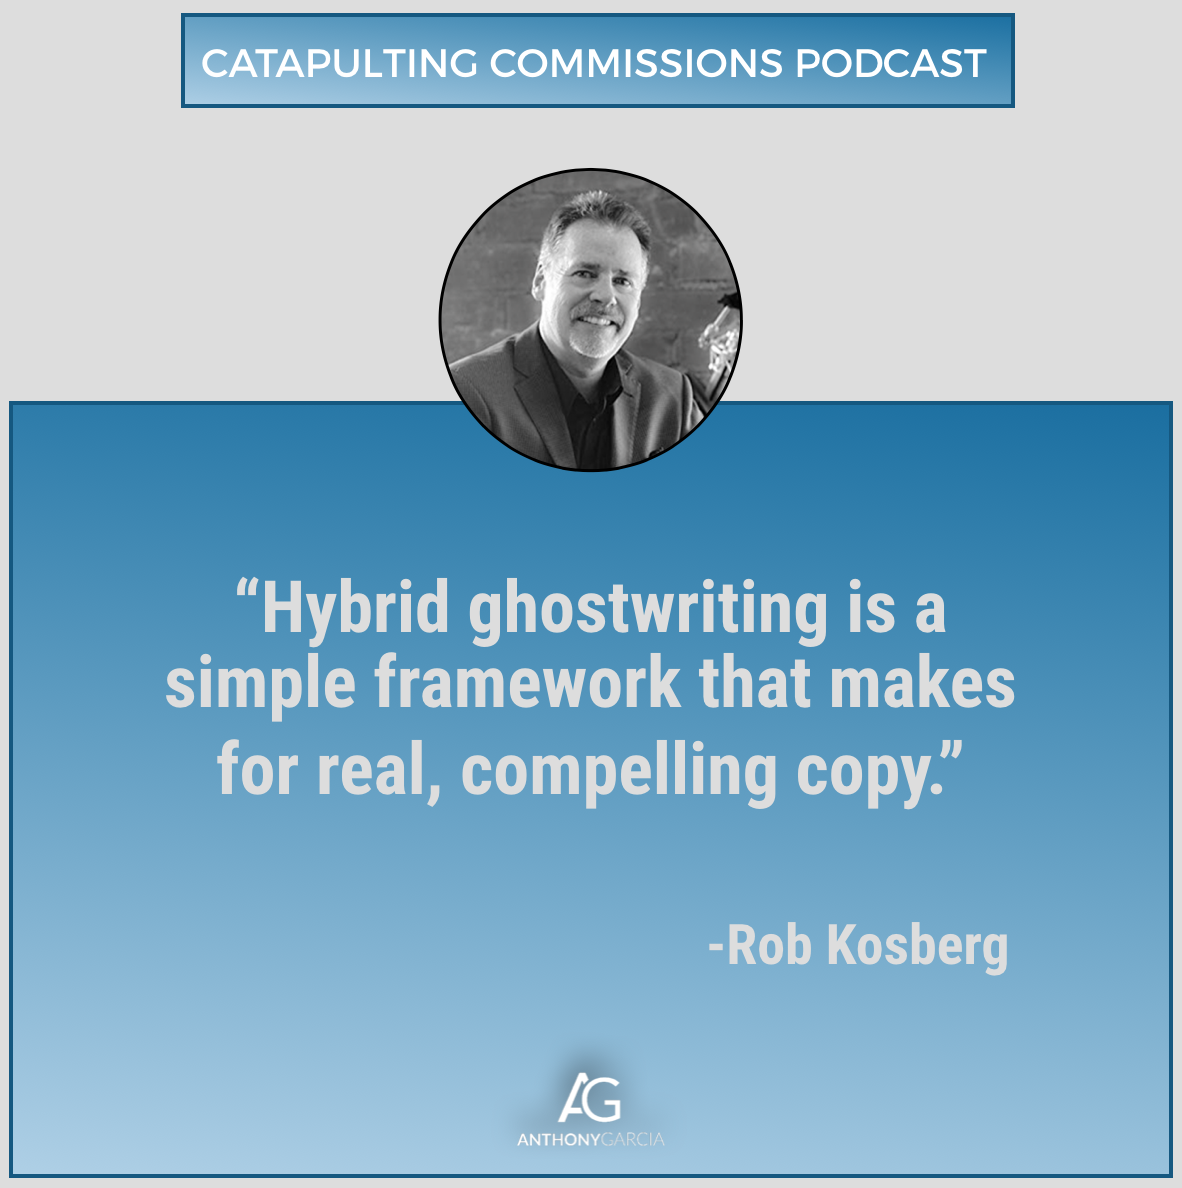 rob kosberg on the catapulting commissions podcast